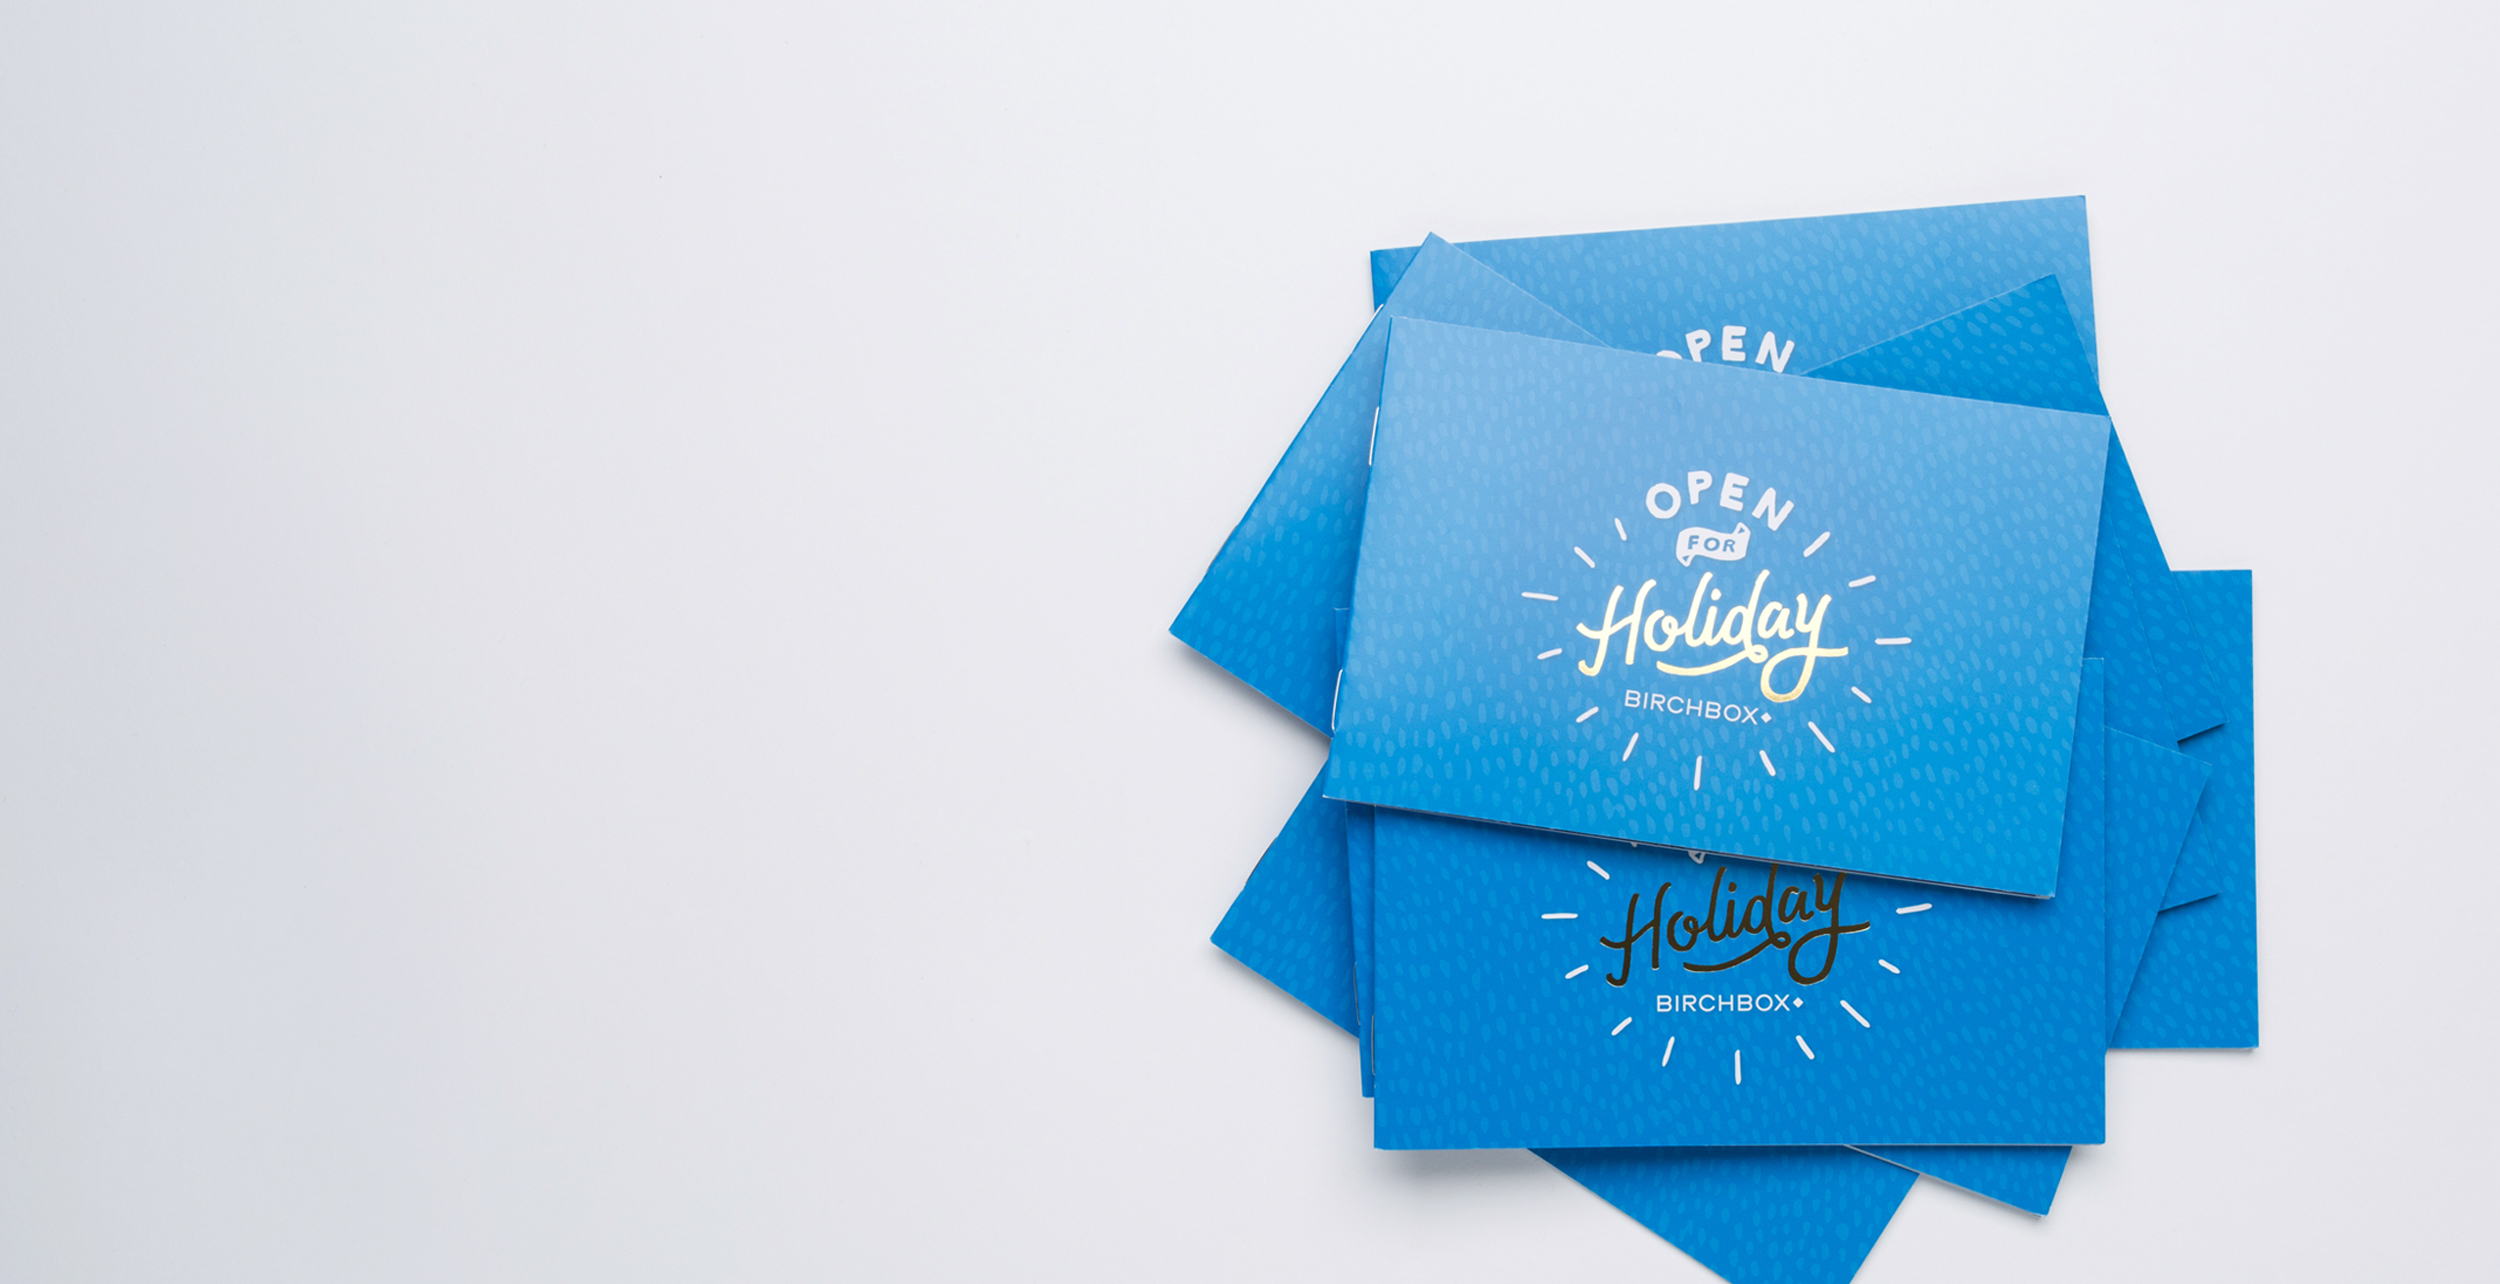 Holiday2014_Booklet_2500x1284.jpg